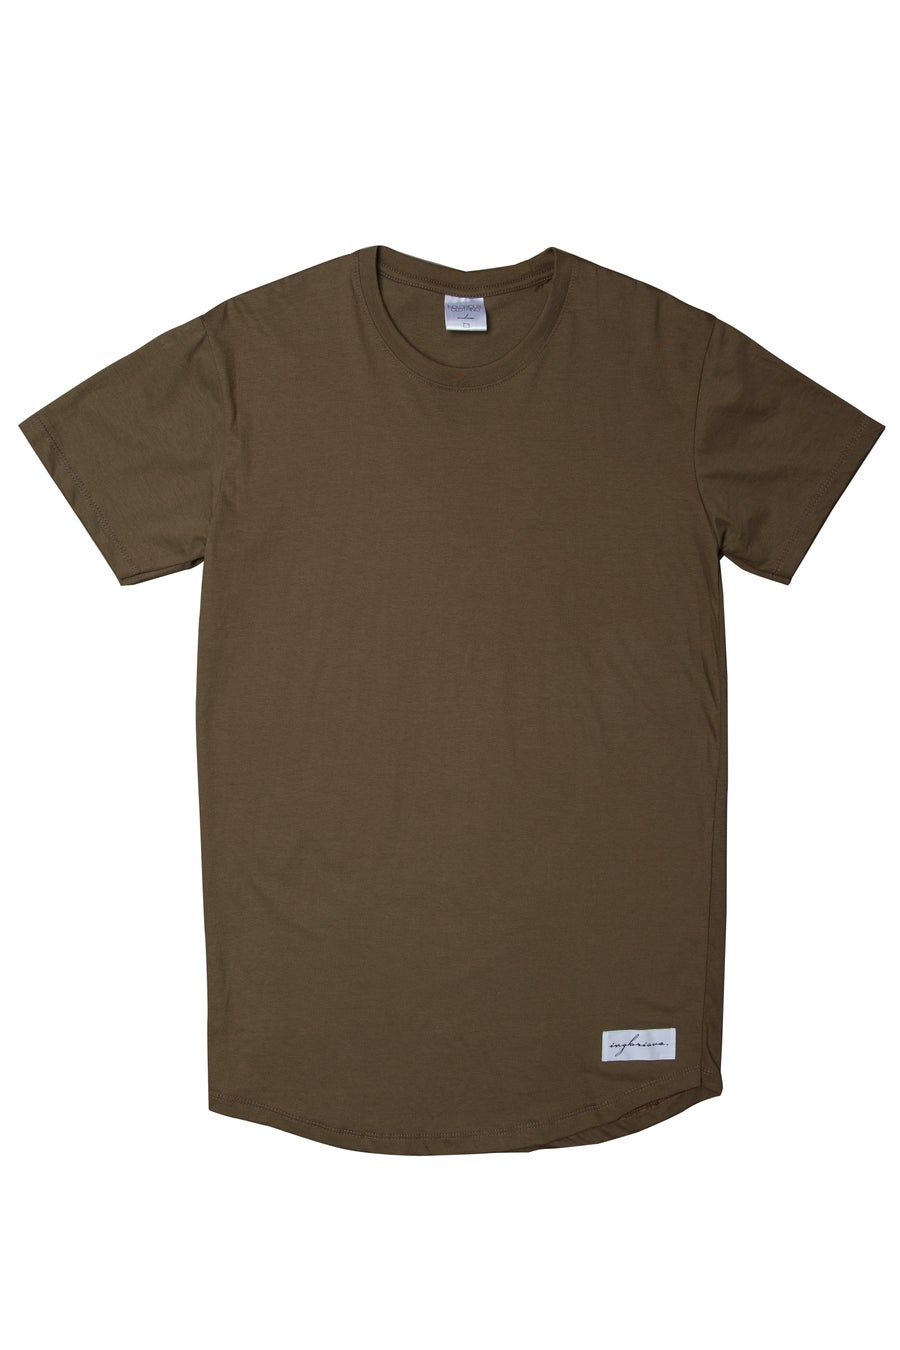 Image of Inglorious Curved Hem (Olive)